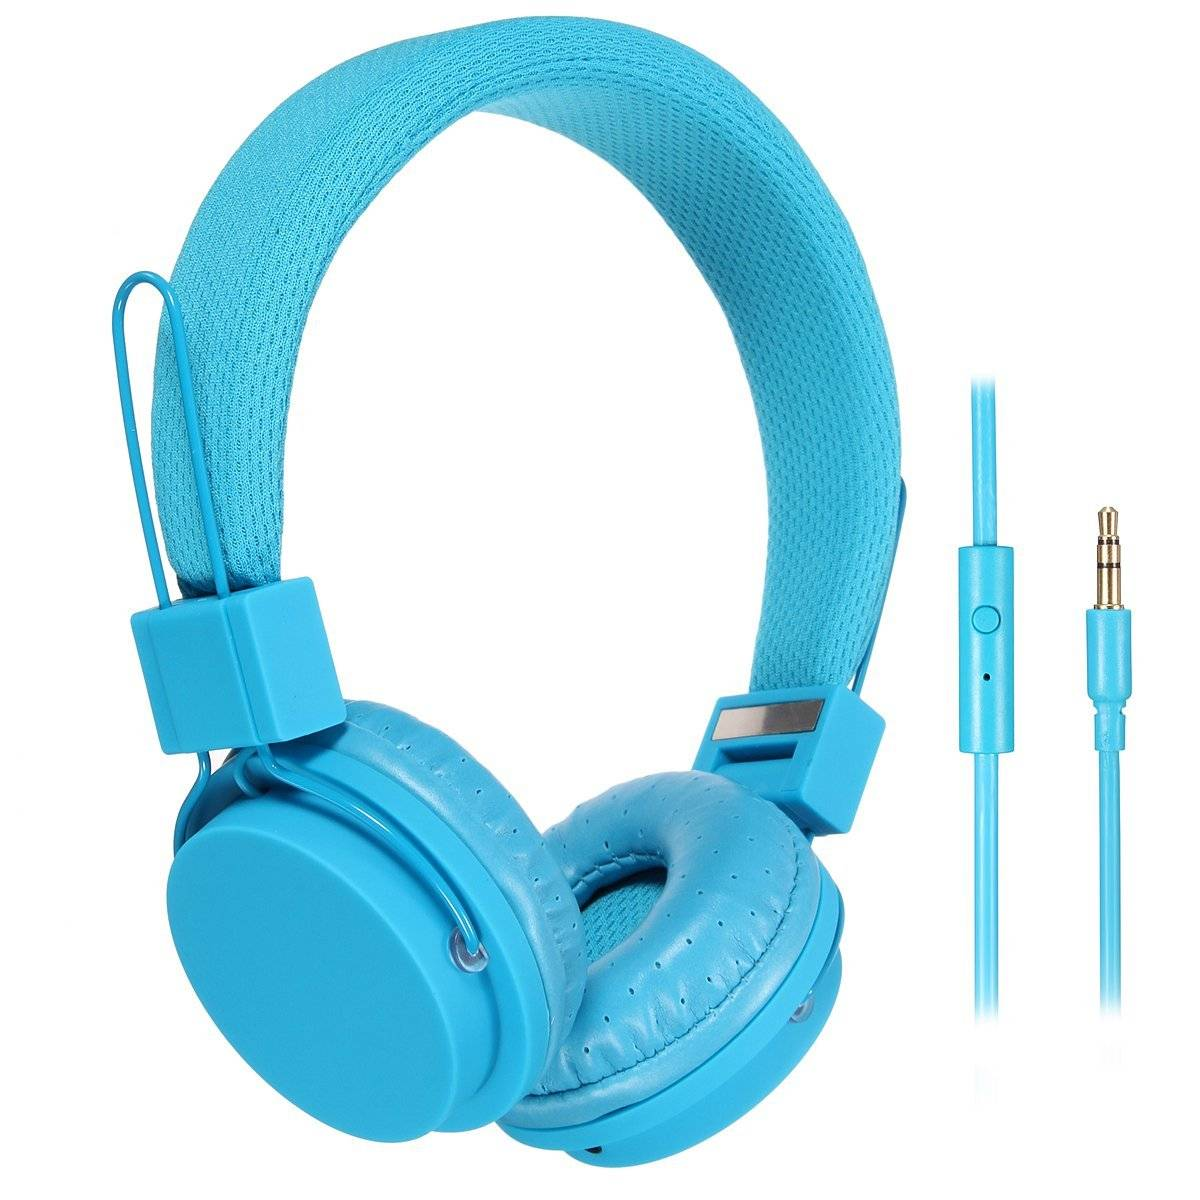 Newest fashion headphone for MP3 or mobile